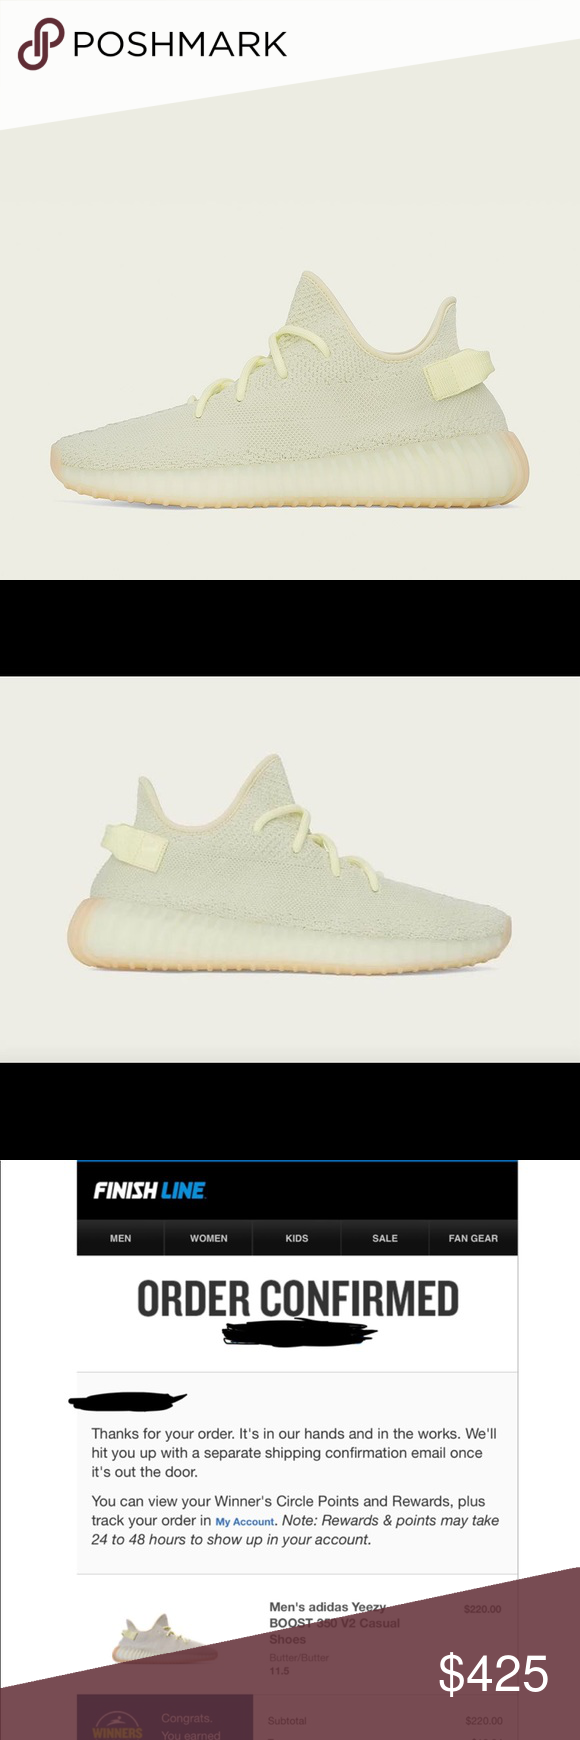 51e330b8c8d30 Yeezy 350 v2 butter BRAND NEW BRAND NEW from Finish Line. I will receive  the sneakers in the mail 7 6. Will ship out that day. Comes with original  receipt.